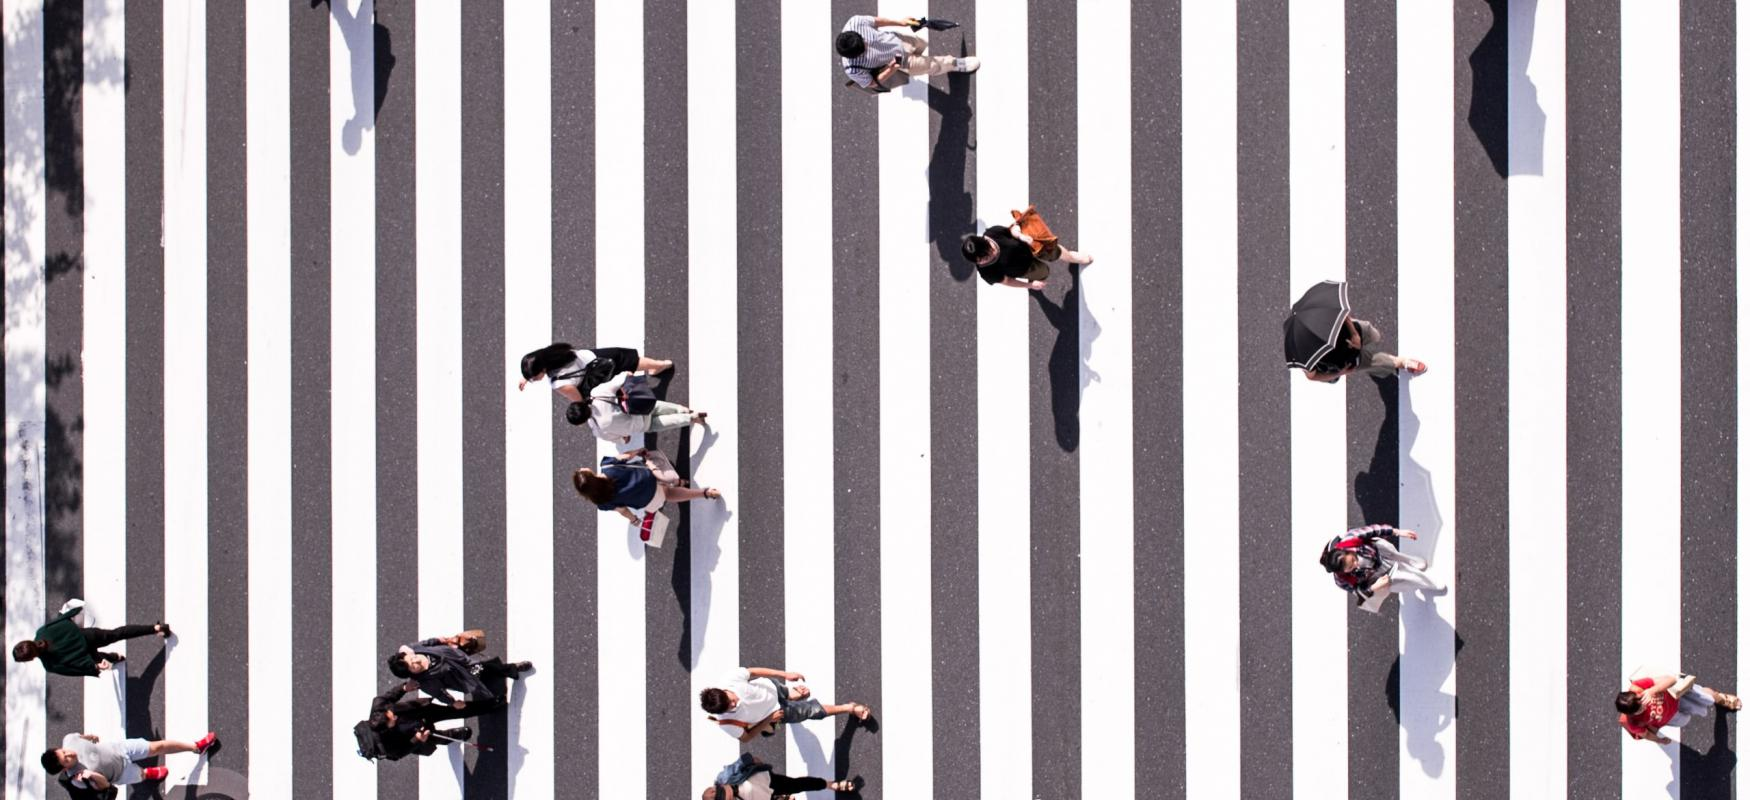 Crossing in japan, seen from above. 2020